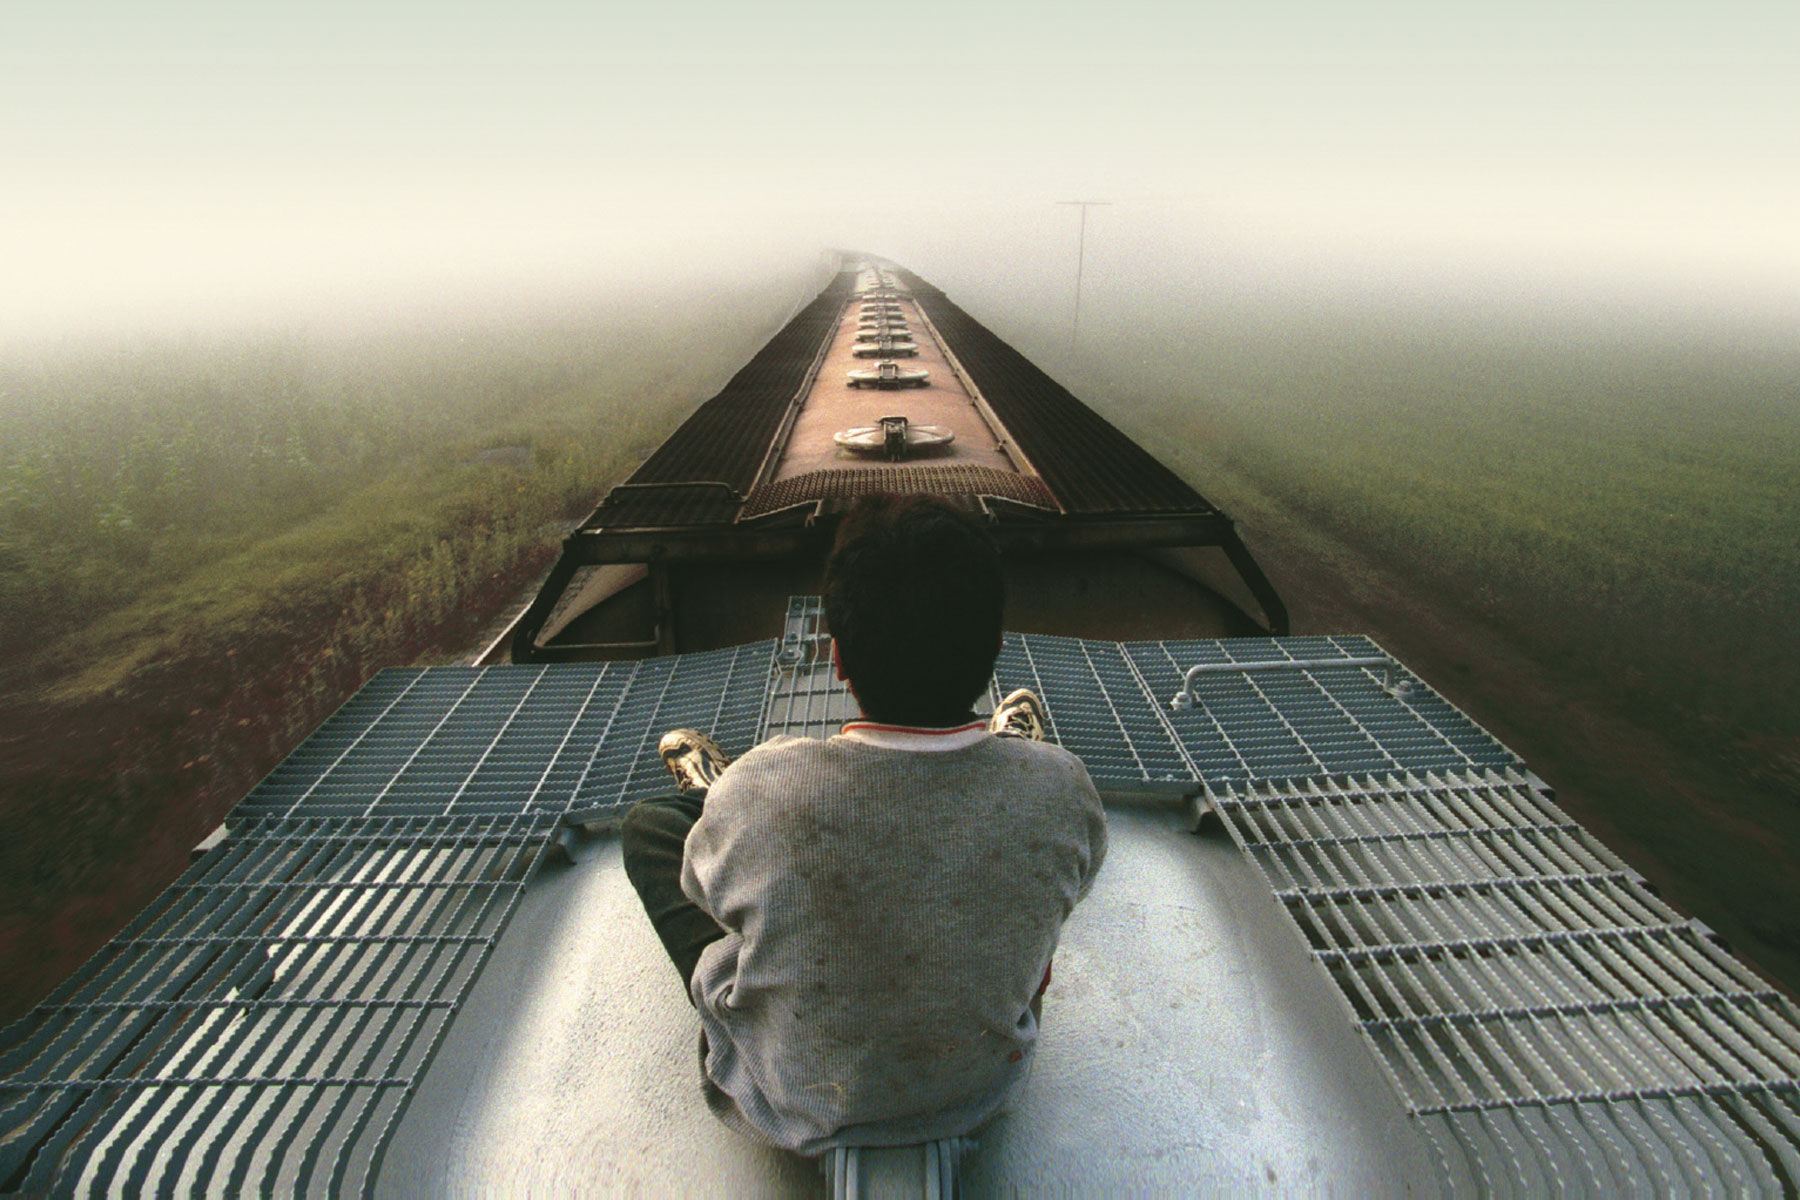 Cover of book, child on top of train